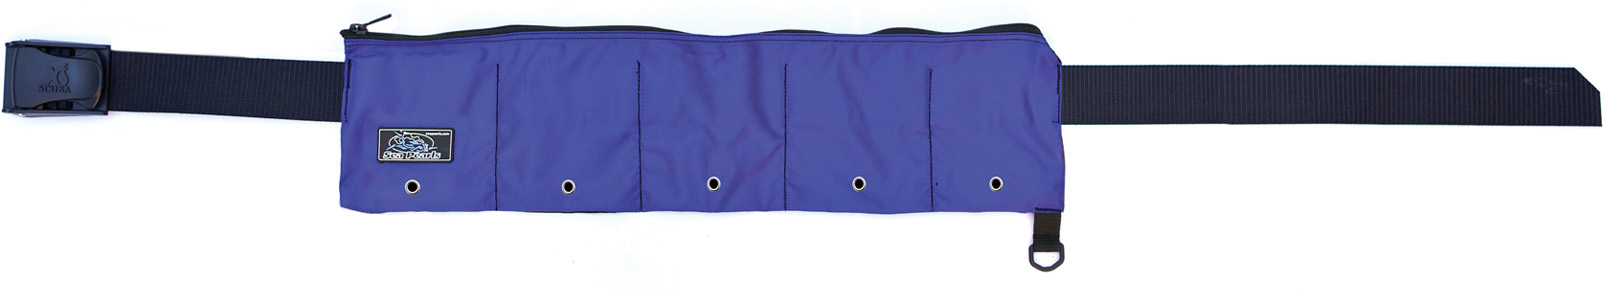 XS Scuba Zippered 5 Pocket 25lb Weight Belt